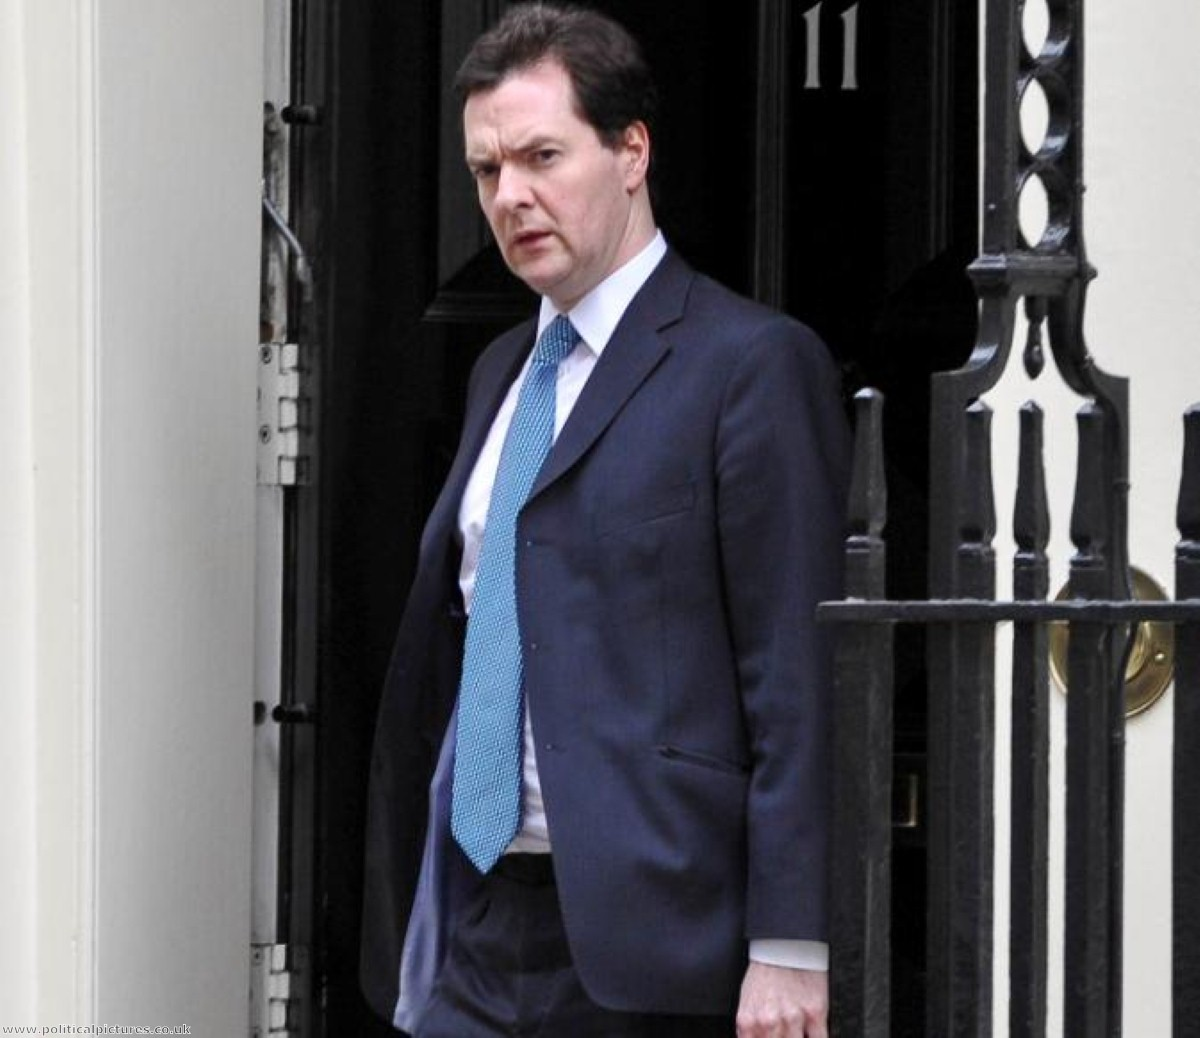 Osborne's position as chancellor is safer after a relatively well-received Budget. Photo credit: www.politicalpictures.co.uk